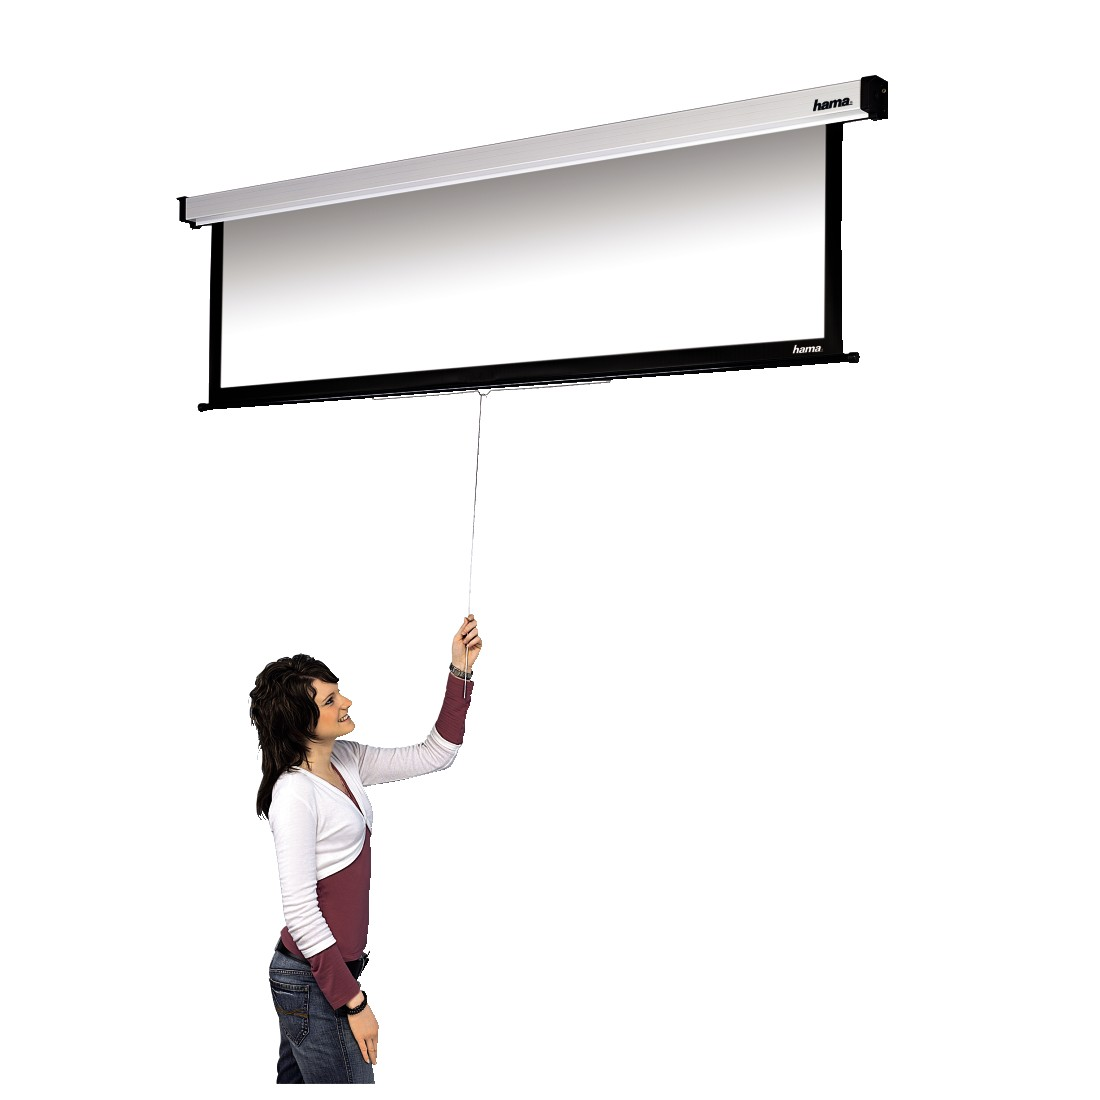 awx2 High-Res Appliance 2 - Hama, Roller Projection Screen, 200 x 150 cm, 16:9